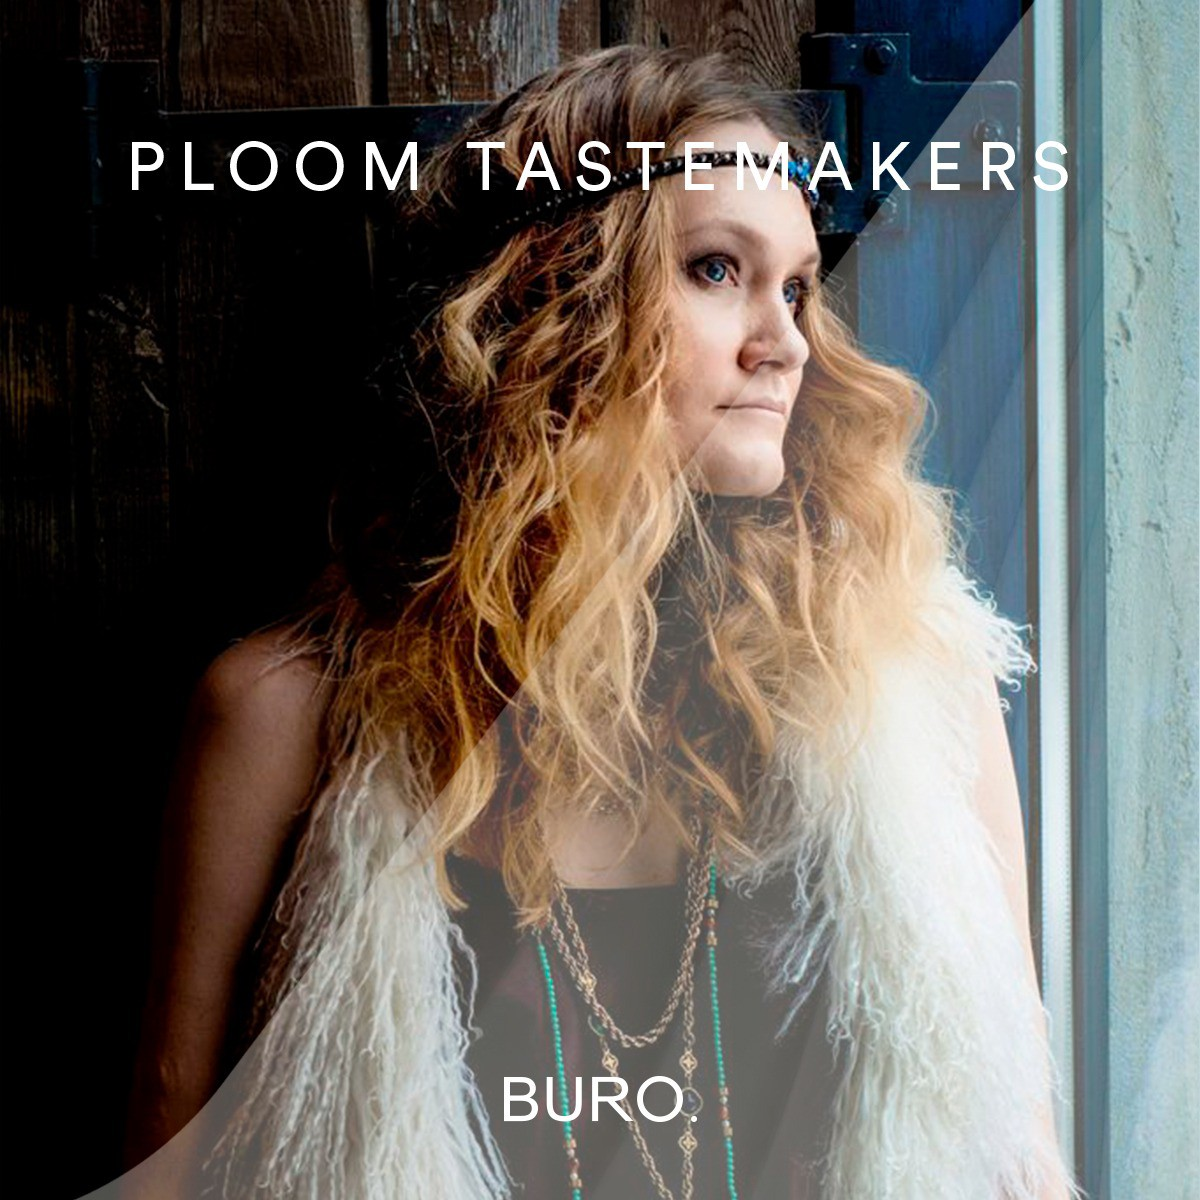 Ploom Tastemakers